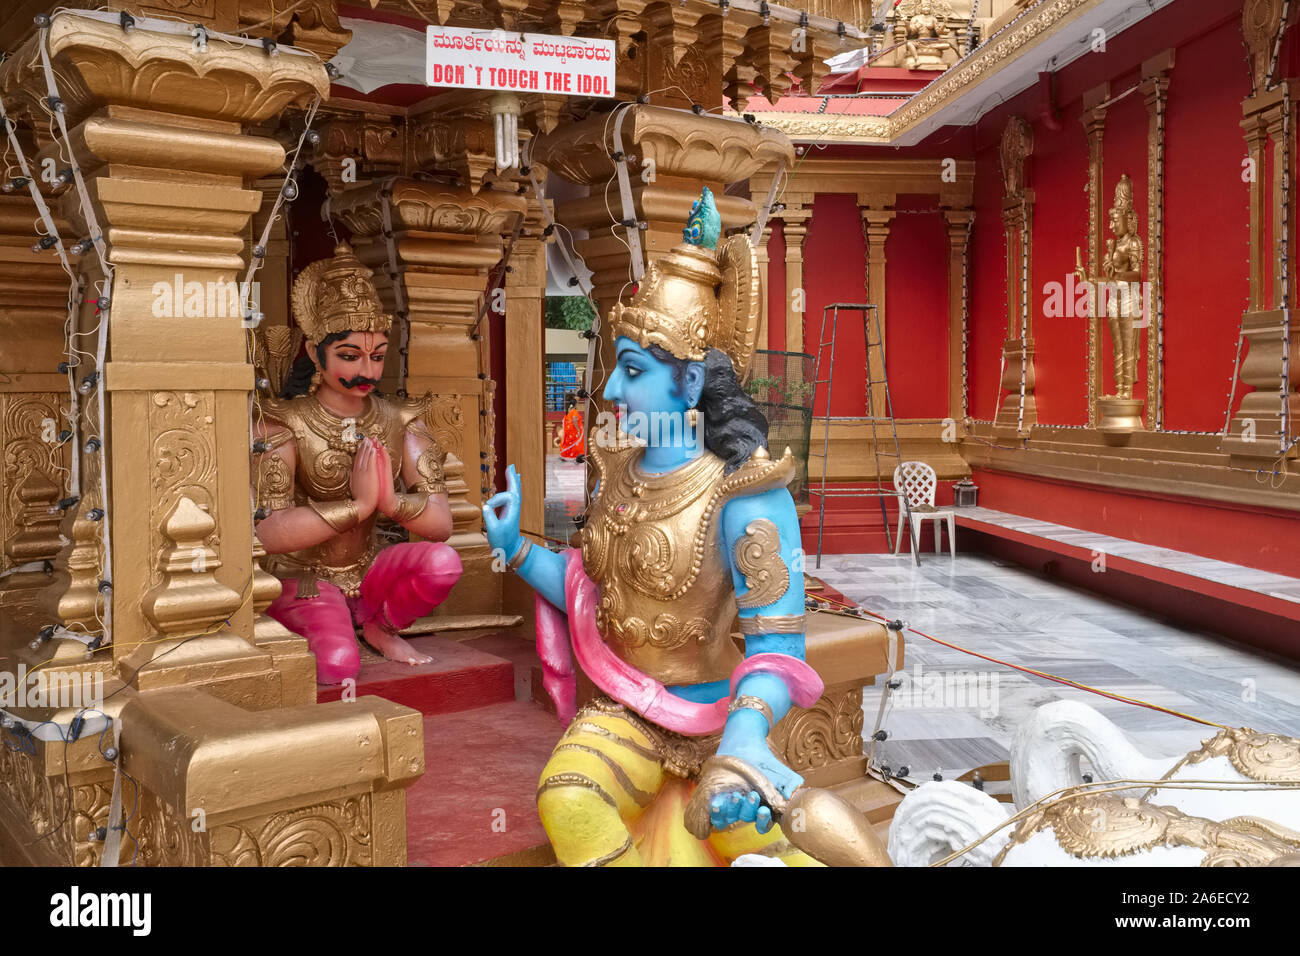 a scene from the bhagavad gita krishna instructing charioteer arjuna a replica set up in gokarnanatheshwara temple kudroli mangalore india 2A6ECY2